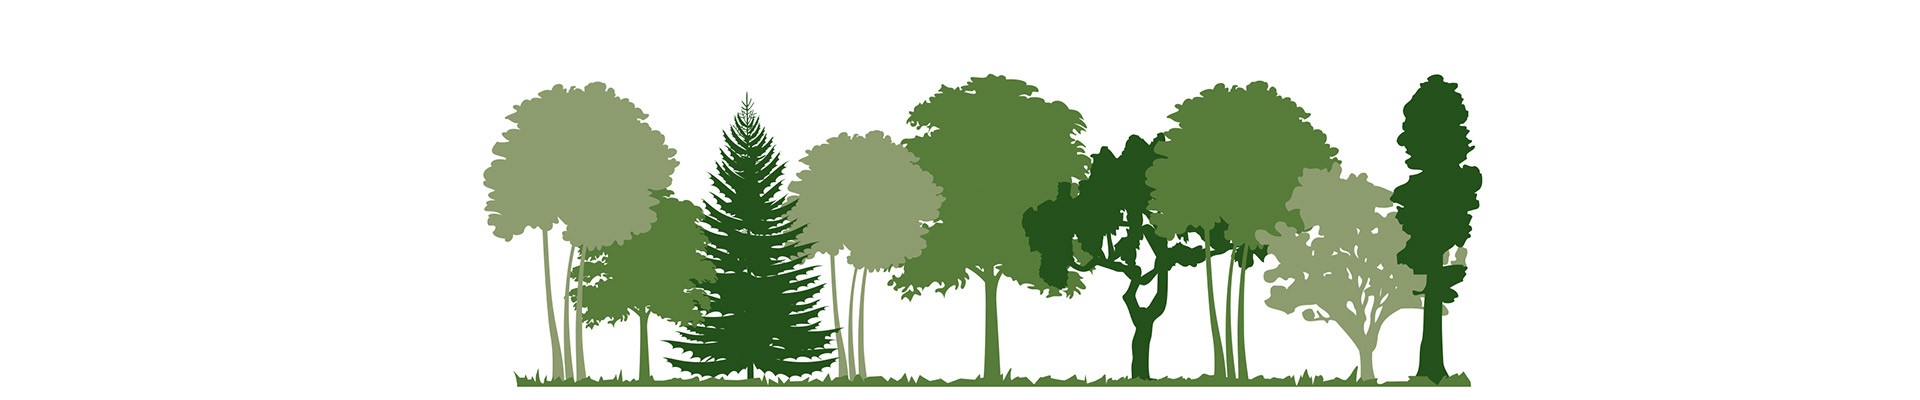 be-natural-foresta